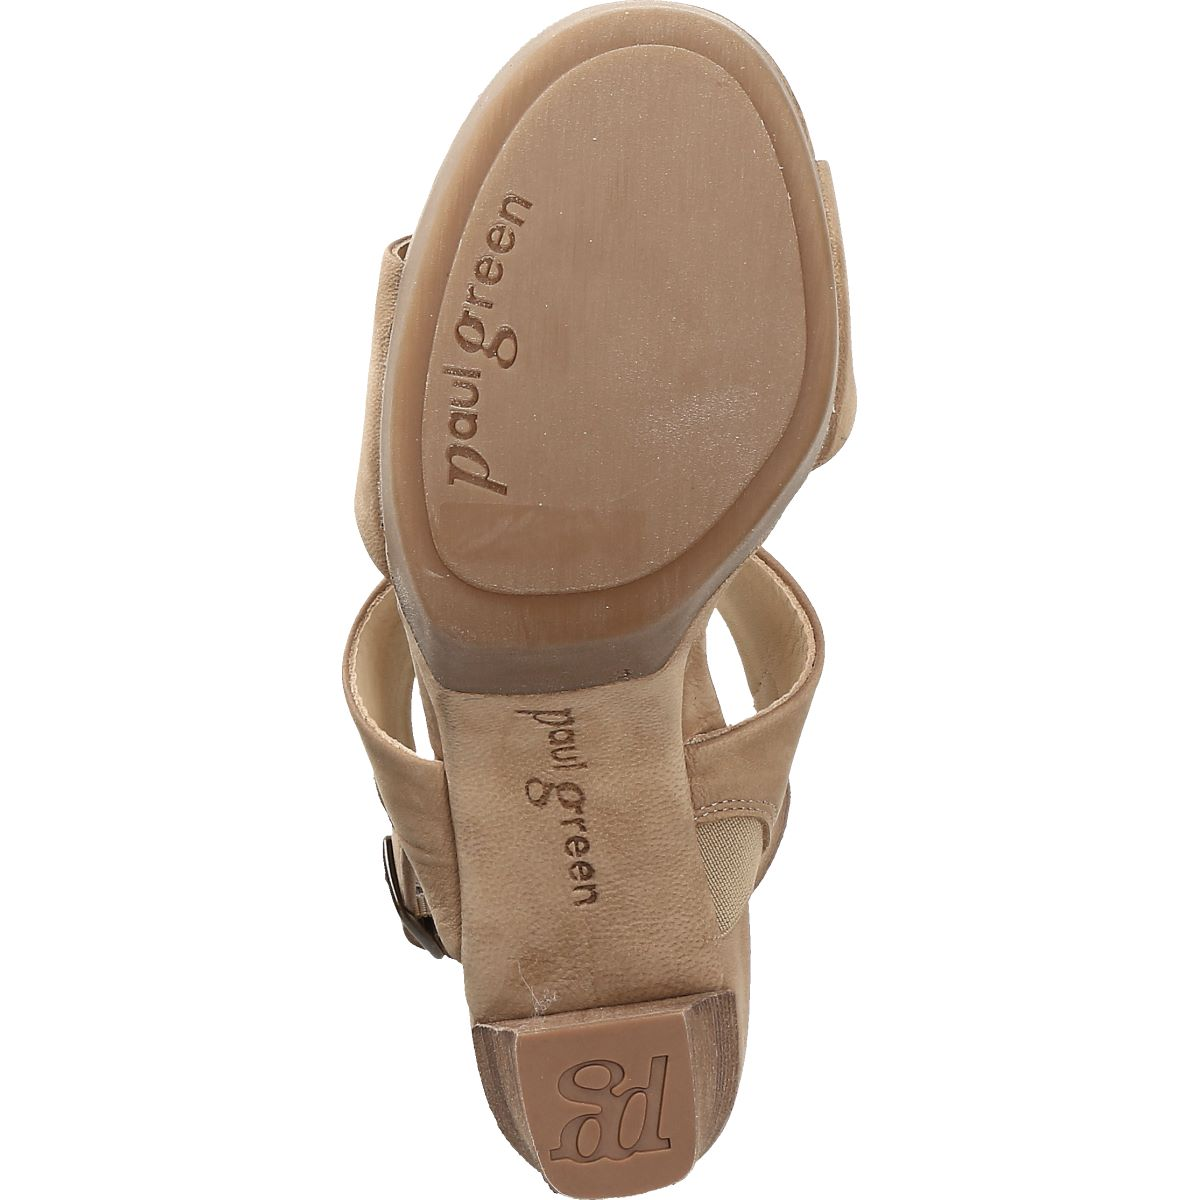 Sandals in brown 7279 004 Buy in Paul Green Online Shop